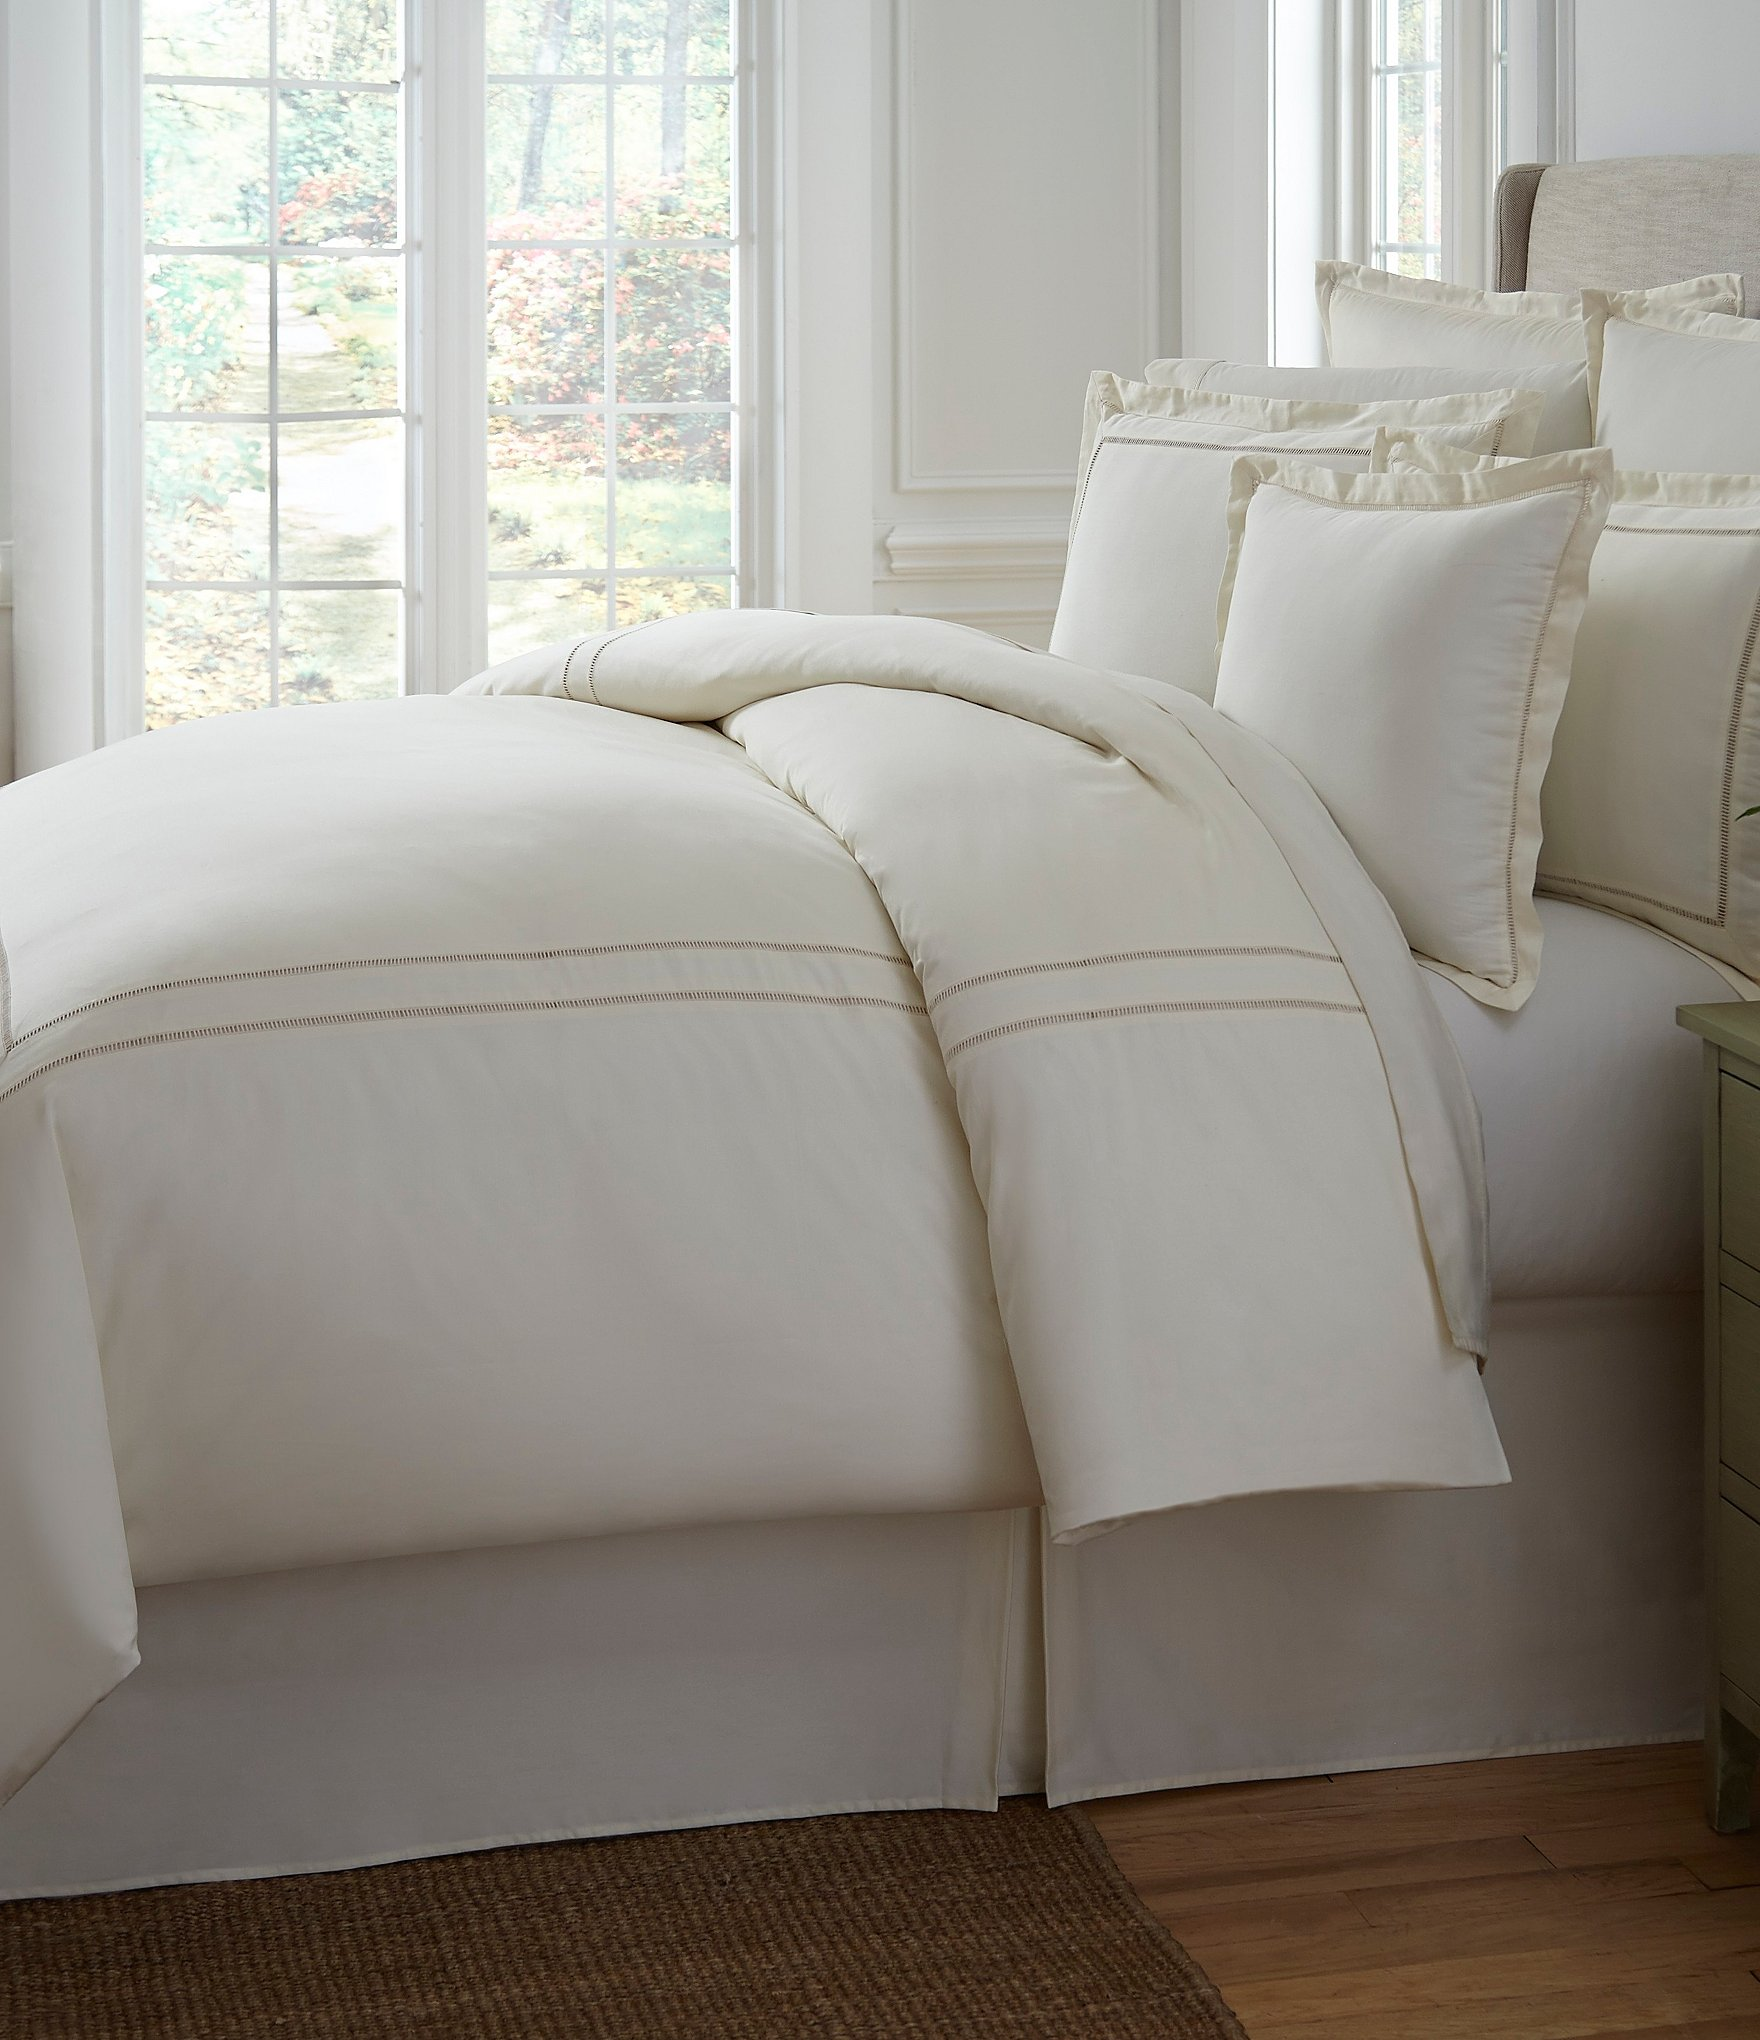 Southern Living Heirloom 500 Thread Count Sateen Amp Twill